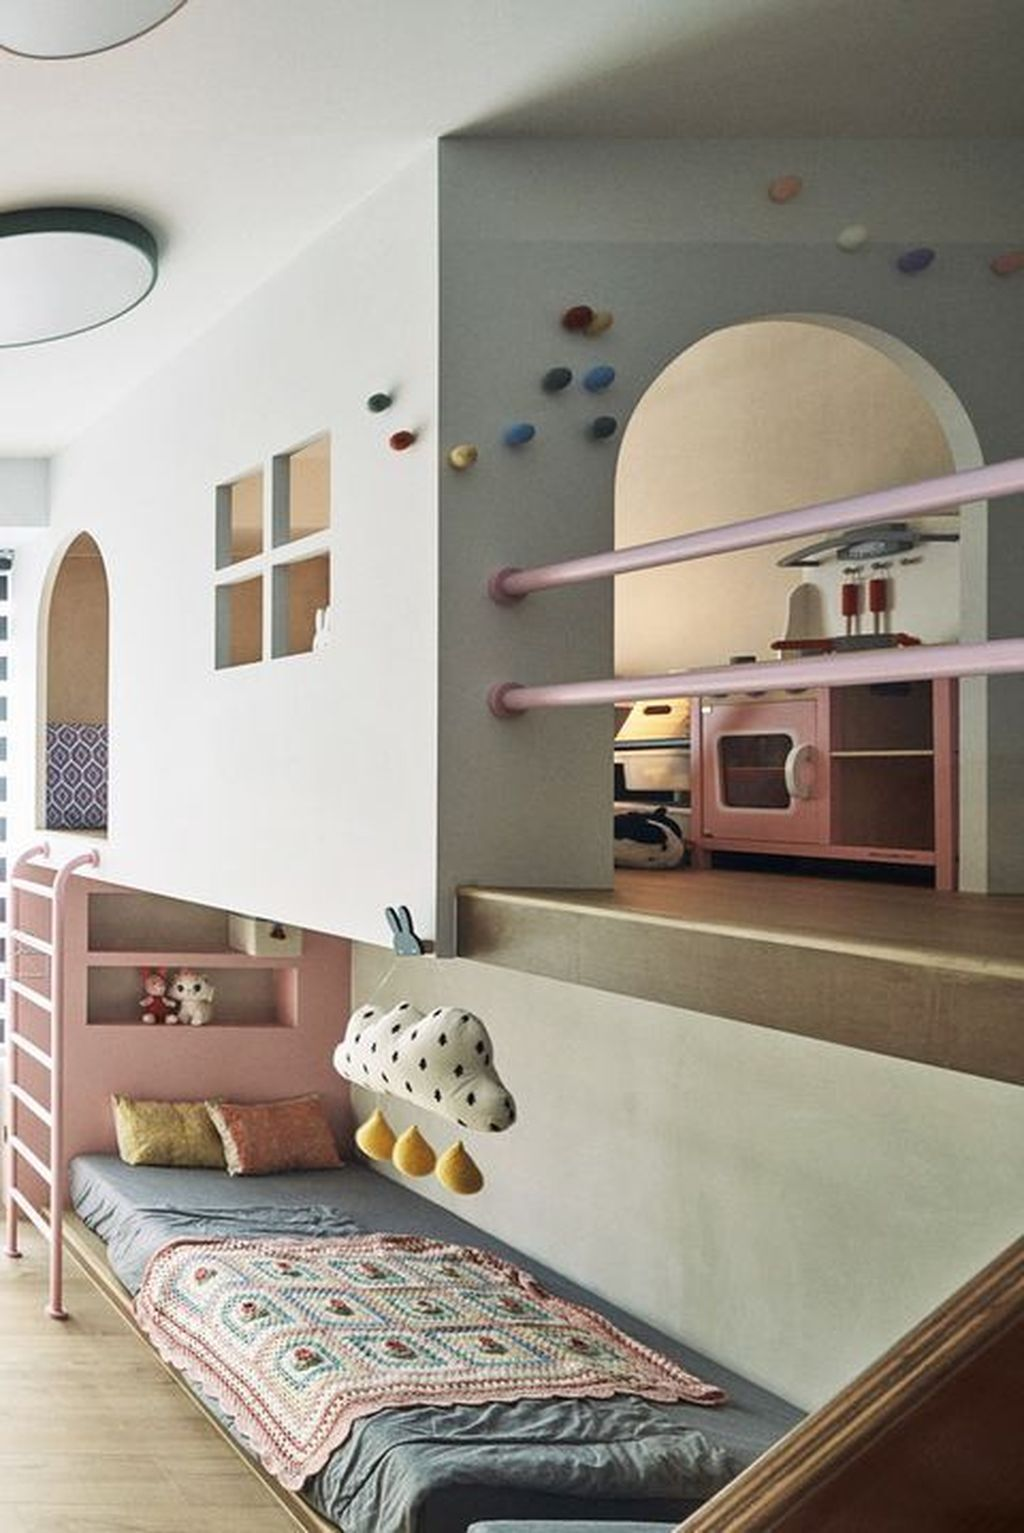 34 Charming Kids Bedroom Design Ideas For Dream Homes In 2020 Cool Kids Bedrooms Stylish Kids Room